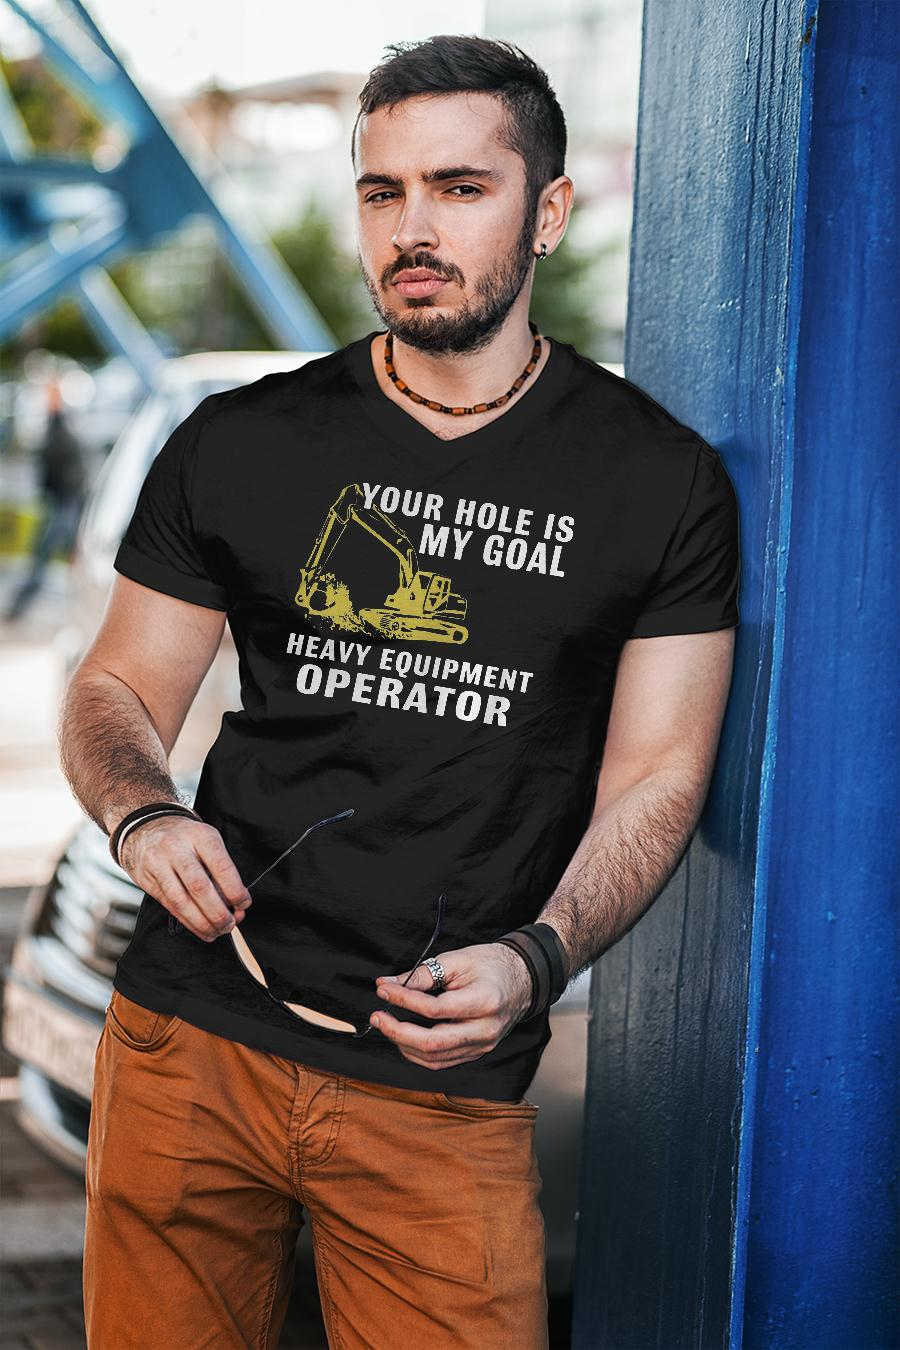 Your hole is my goal heavy equipment operator shirt unisex